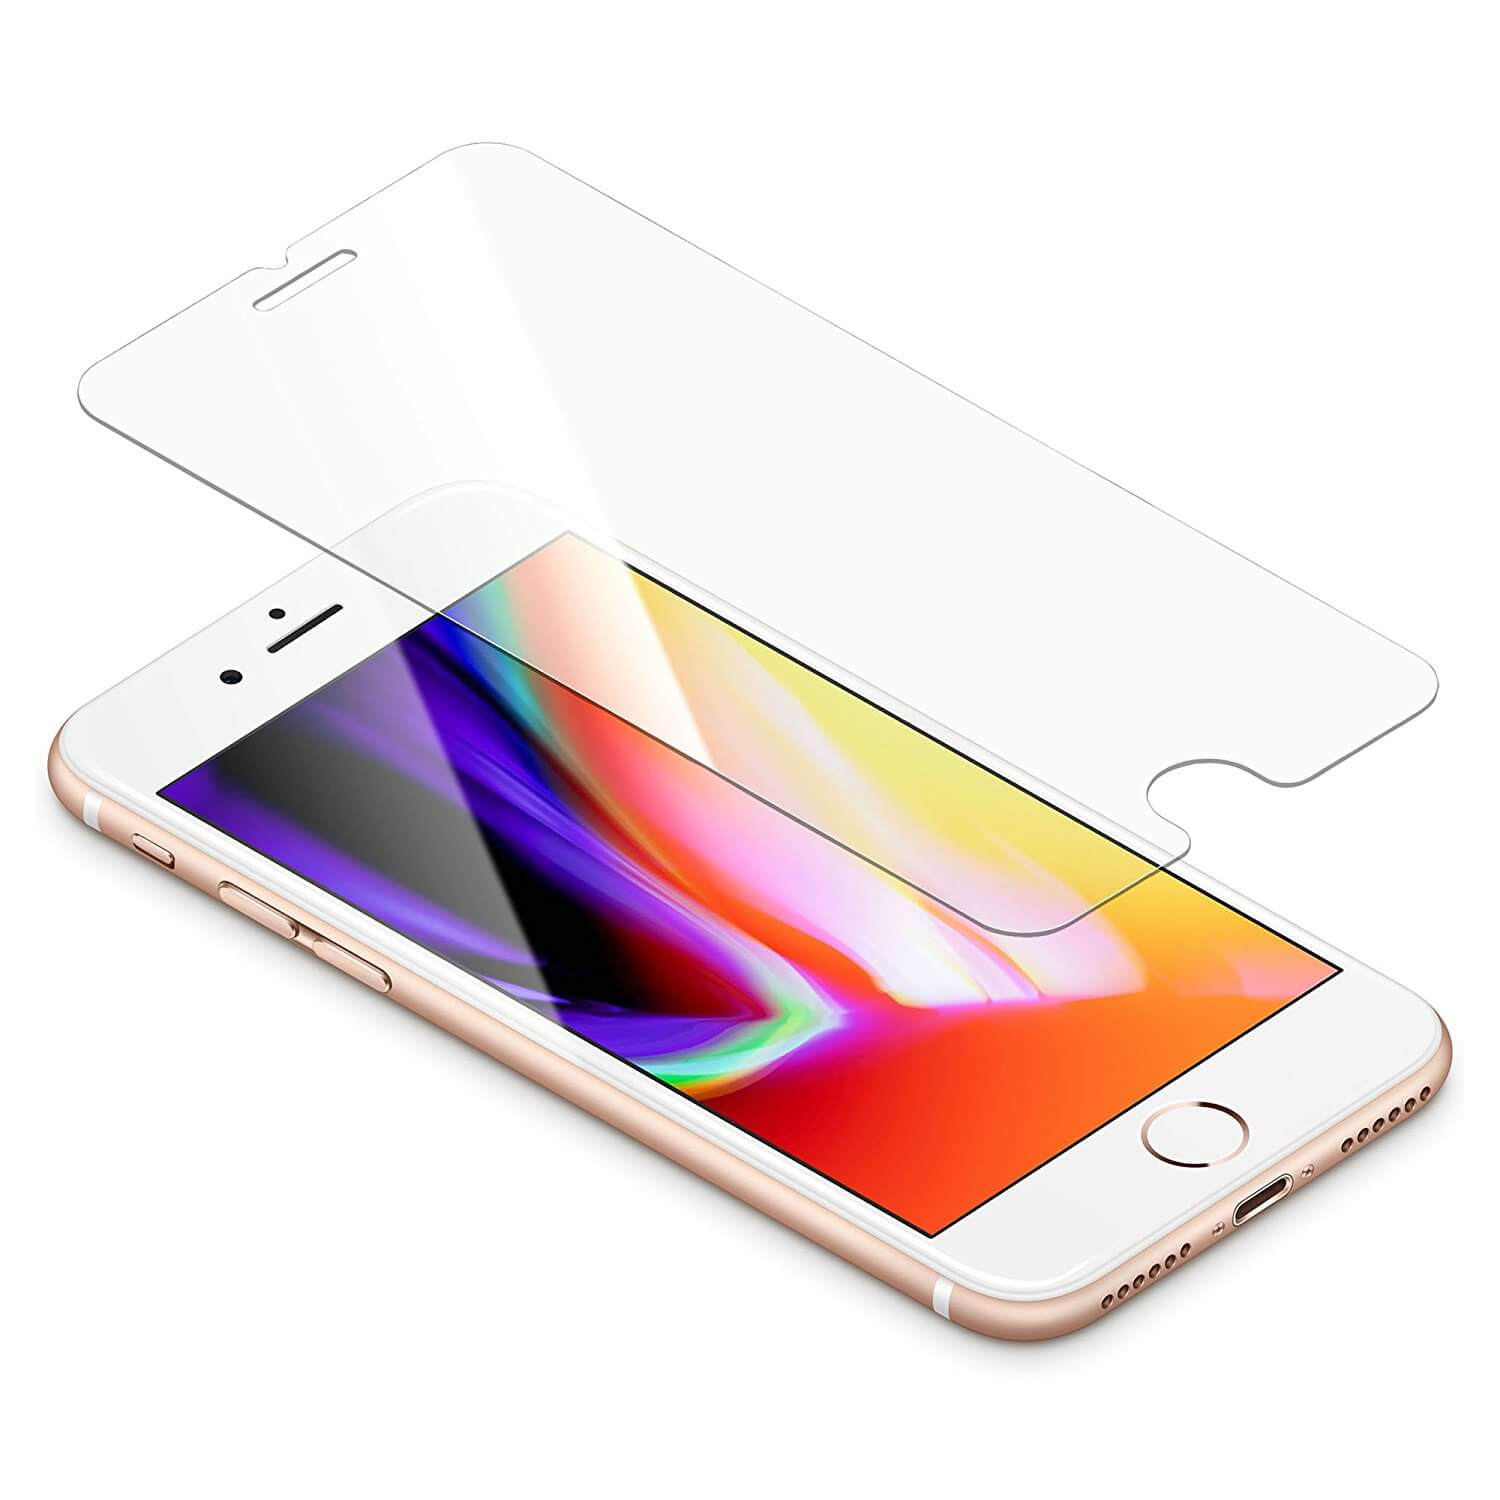 Torrii BodyGlass 2.5D Glass for iPhone 8, iPhone 7, iPhone 6S, iPhone 6 (clear)